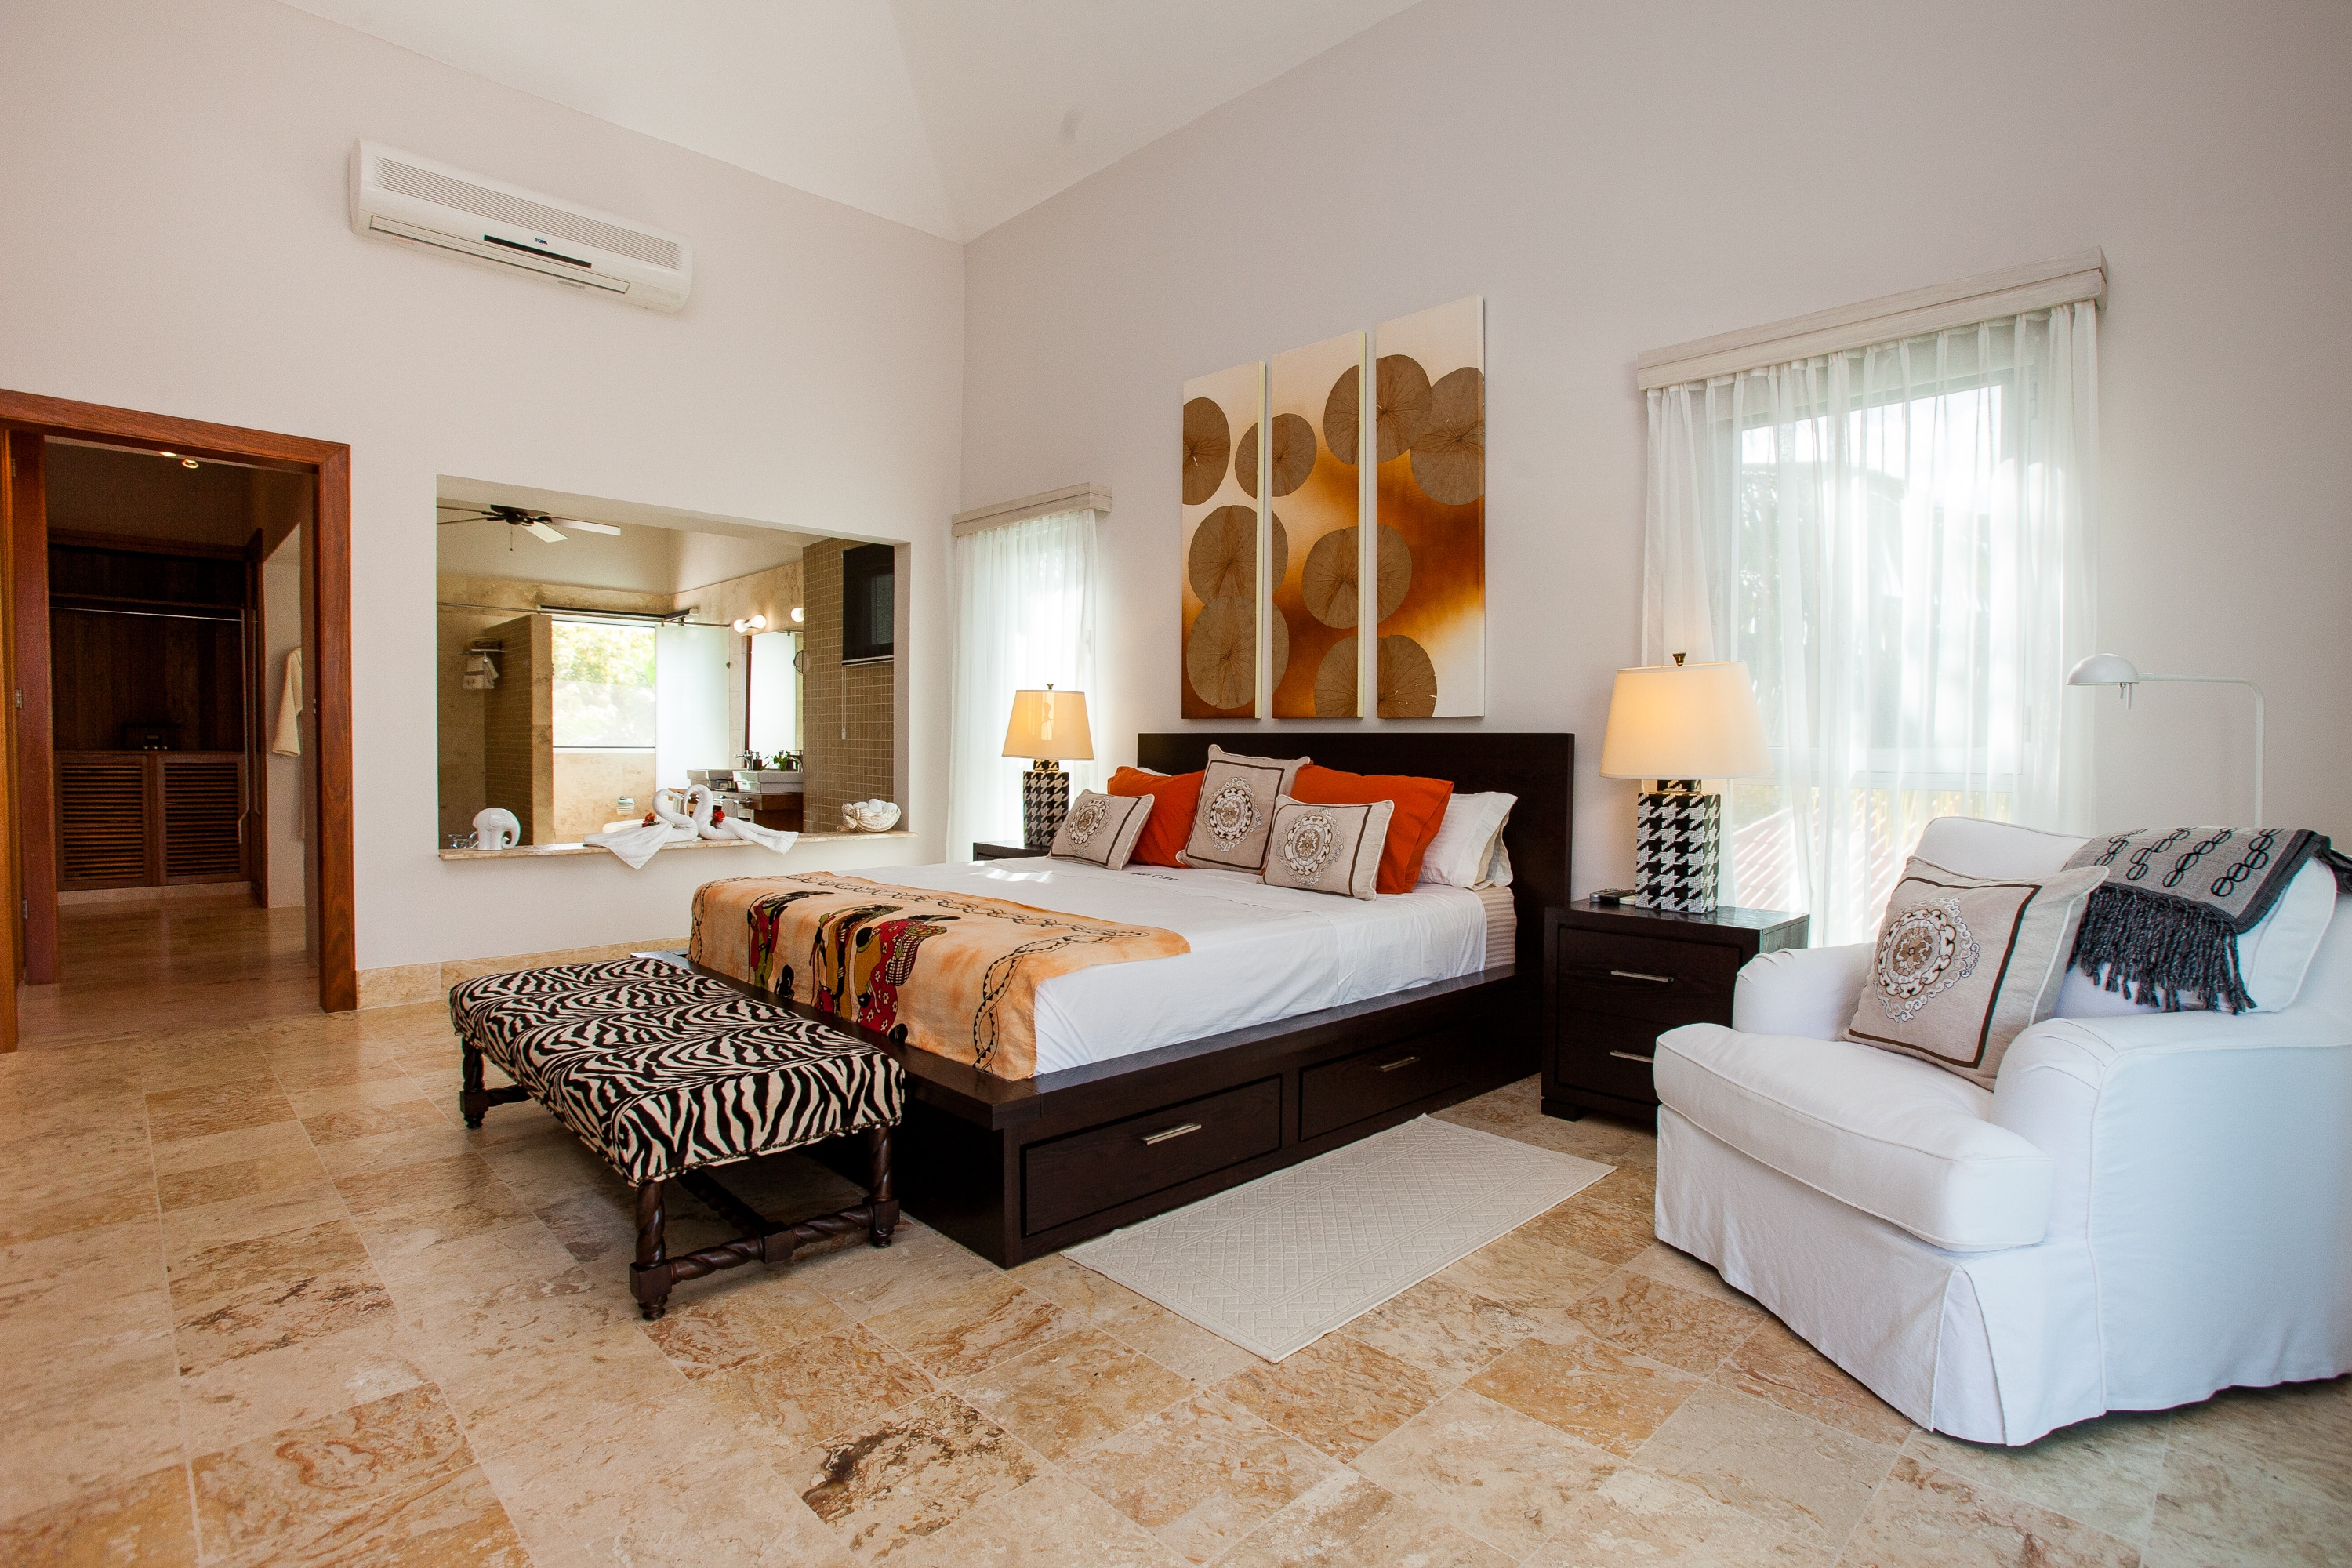 Spacious bedroom at Palma Real Villa